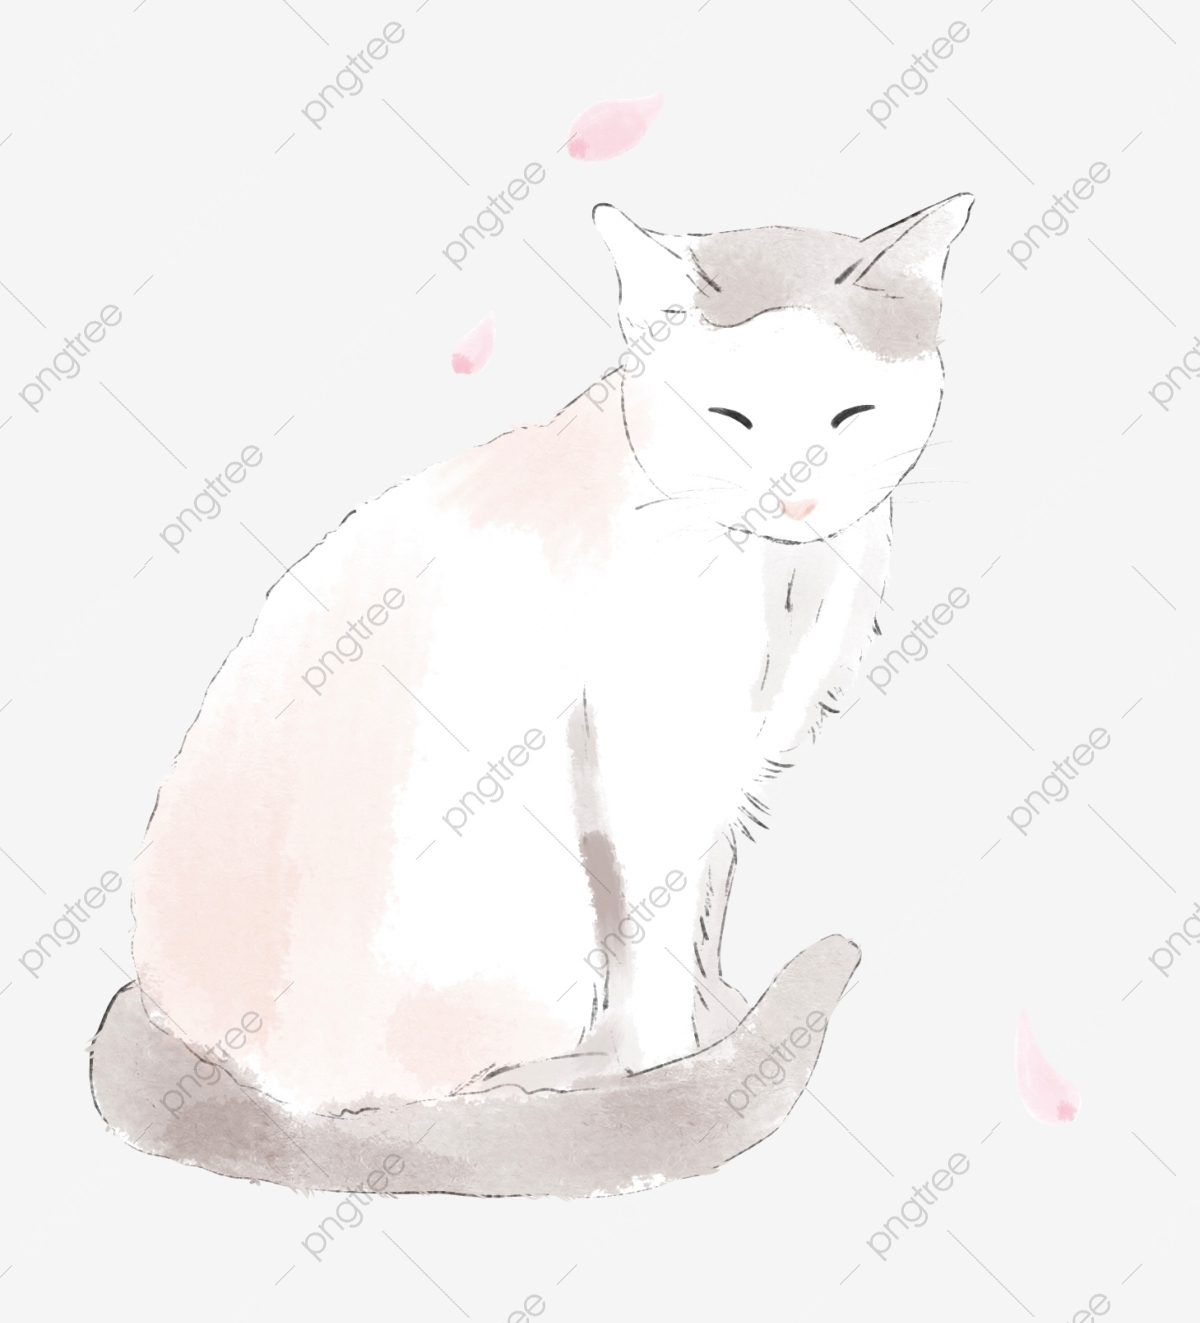 Phone Wallpaper Cat Warm Color Light Color Petal Pink Cute Cat Png Transparent Clipart Image And Psd File For Free Download